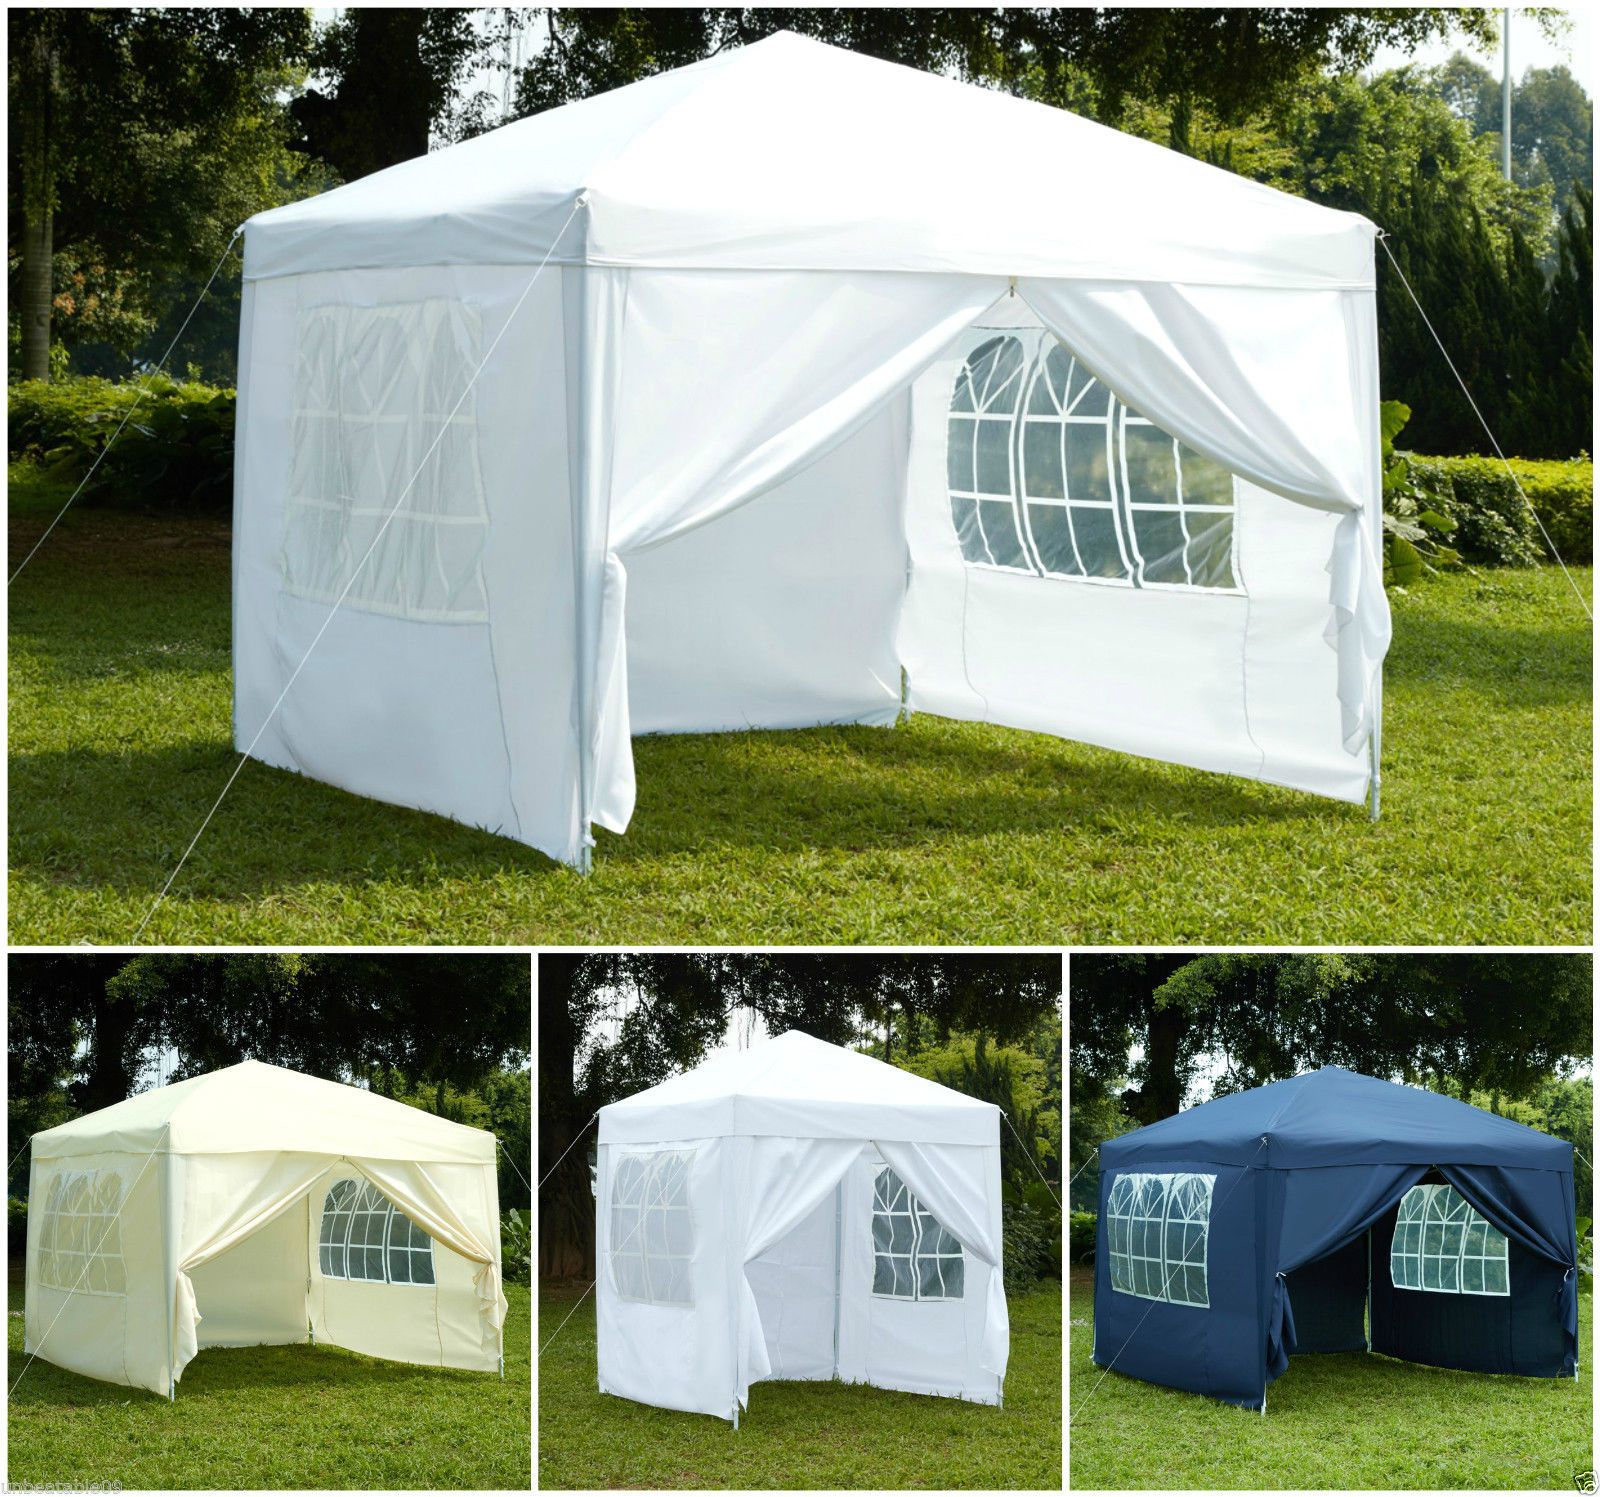 Pop-Up 3x3 2x2 FULLY WATERPROOF Gazebo with Sides and Bag Garden Outdoor Marquee & Pop-Up 3x3 2x2 FULLY WATERPROOF Gazebo with Sides and Bag Garden ...